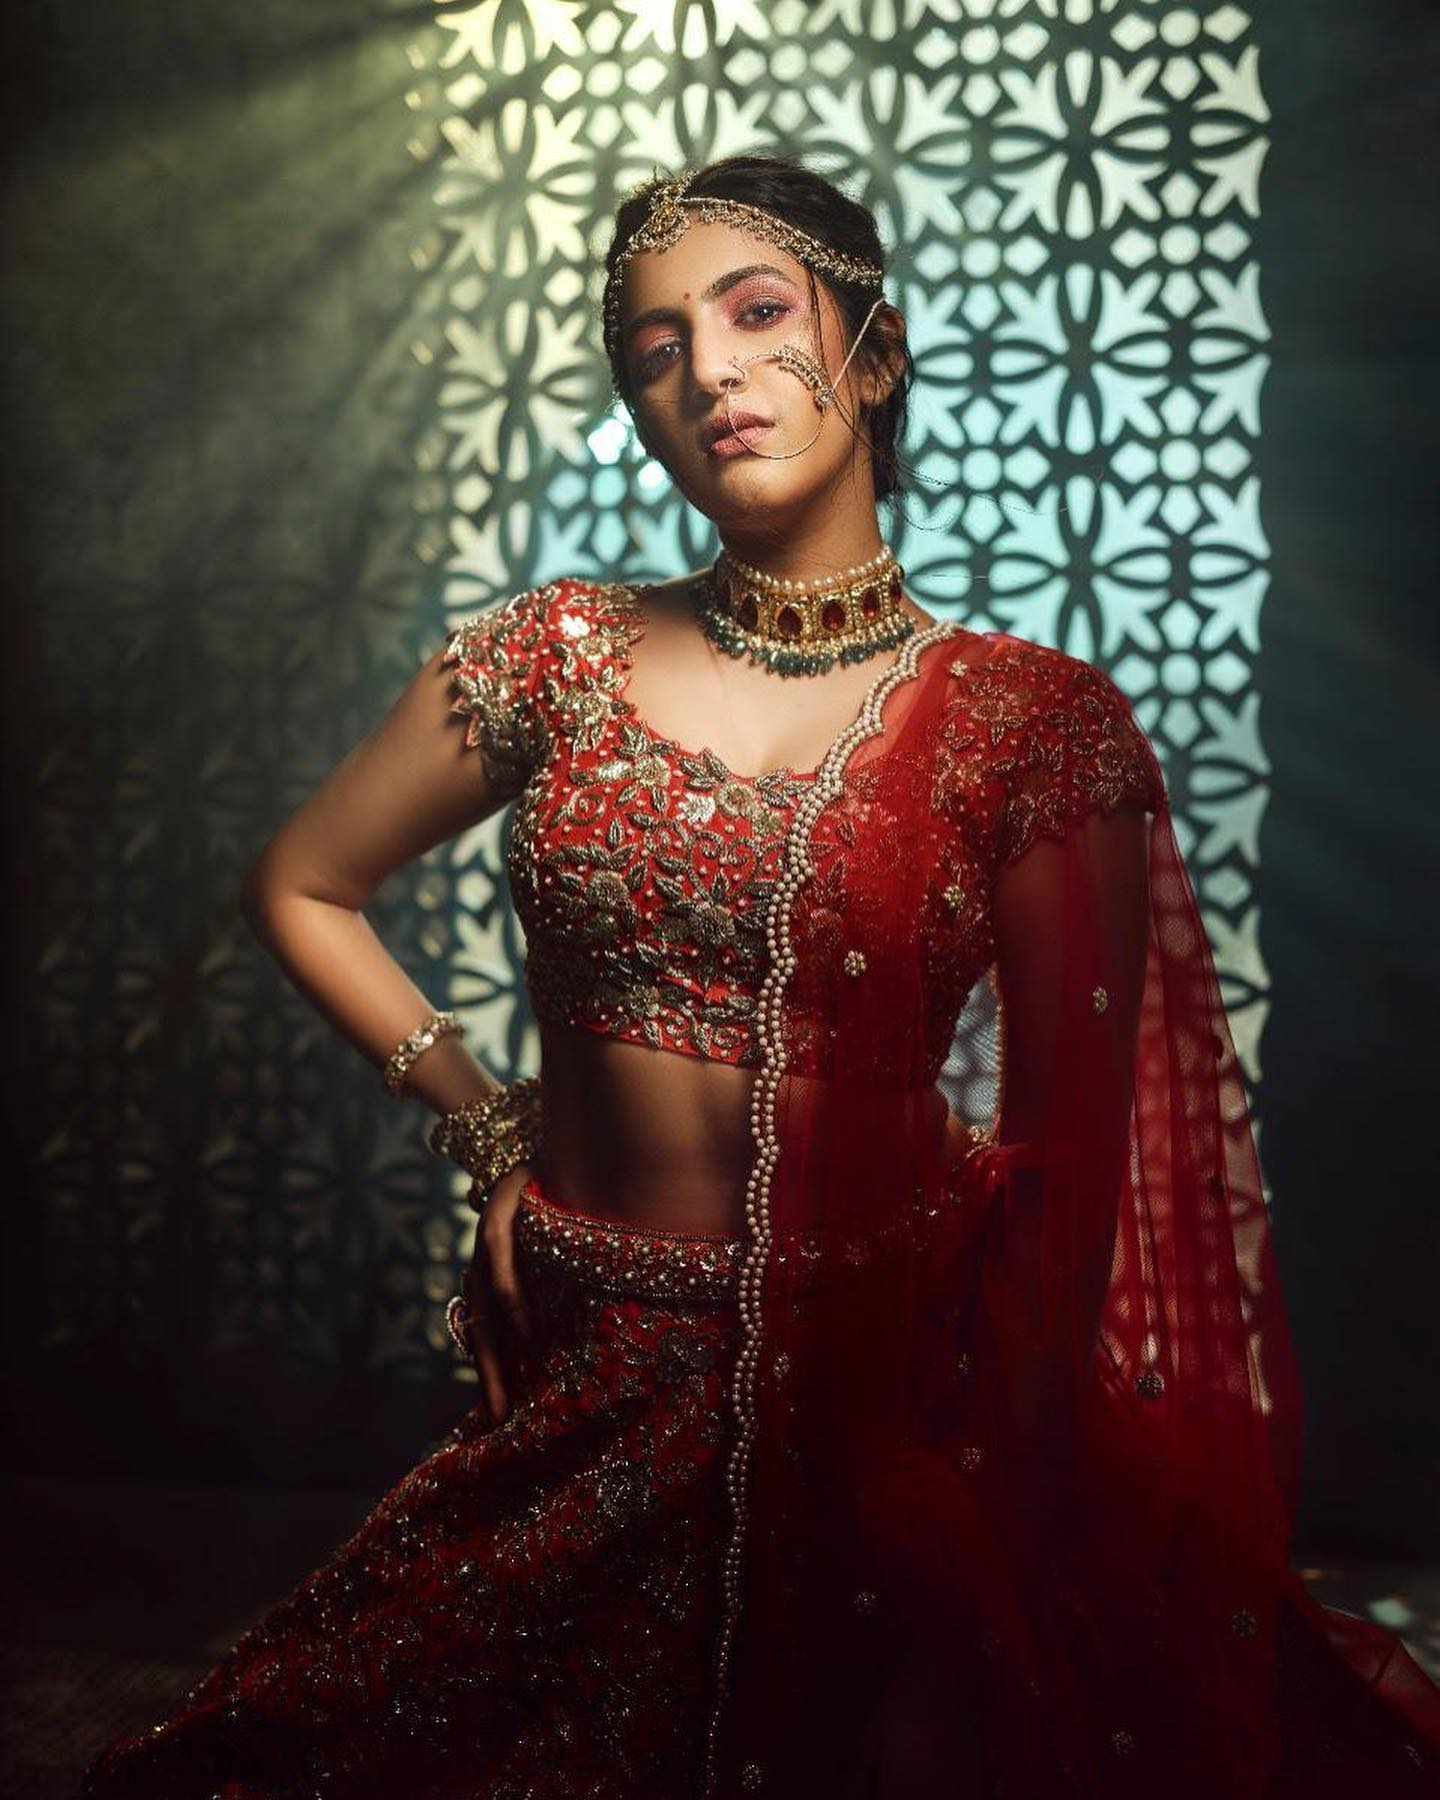 This stunning bride-to-be 